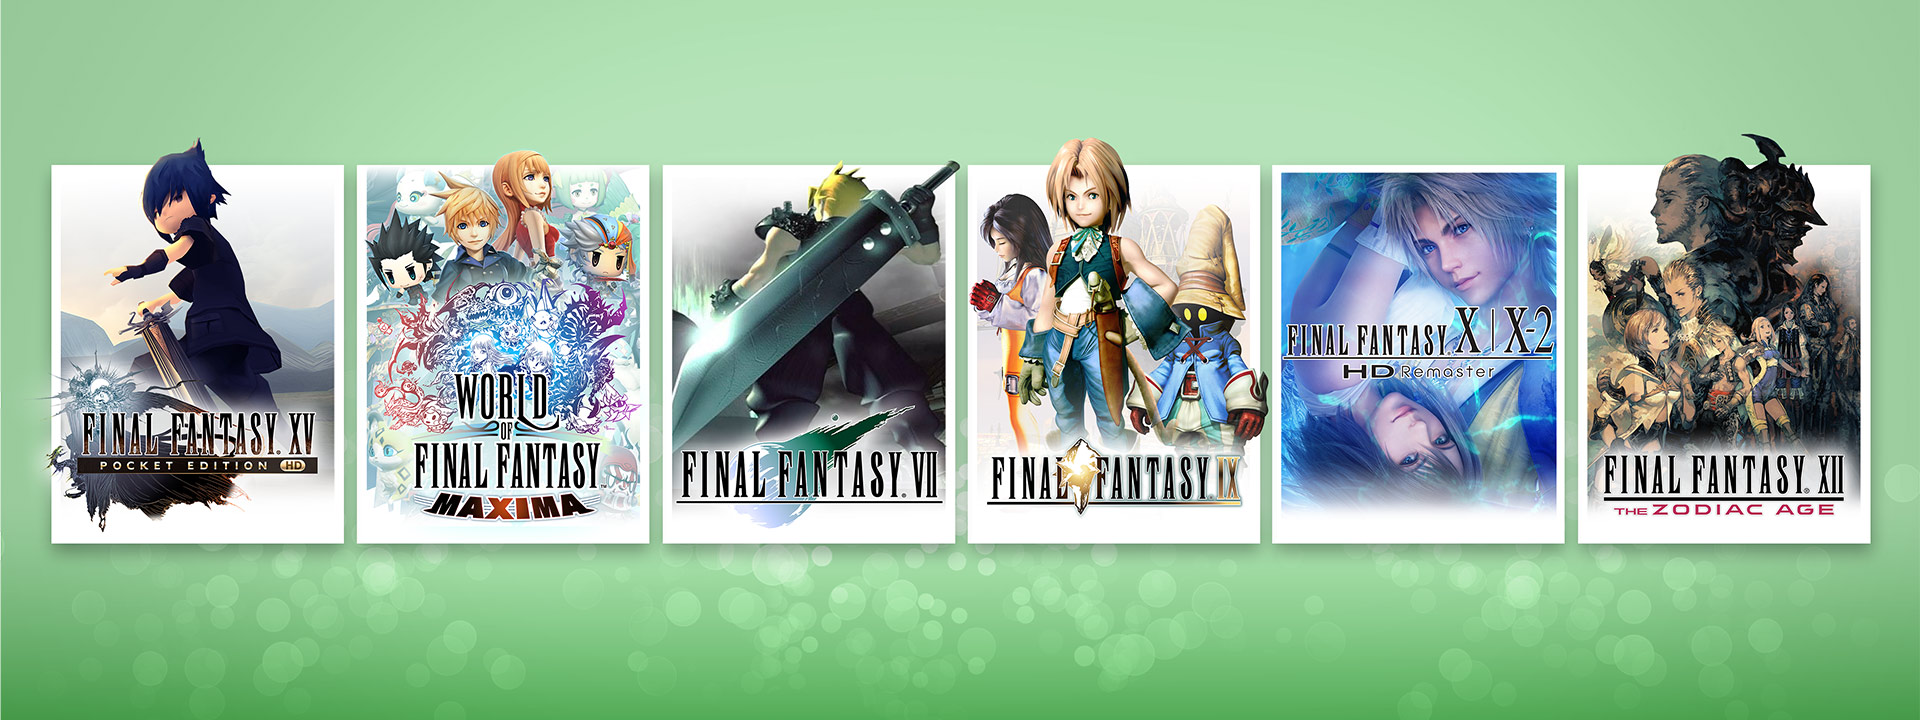 Ilustrações das caixas dos jogos FINAL FANTASY XV POCKET EDITION HD, WORLD OF FINAL FANTASY MAXIMA, FINAL FANTASY VII, FINAL FANTASY IX, FINAL FANTASY X | X-2 HD Remaster e FINAL FANTASY XII THE ZODIAC AGE